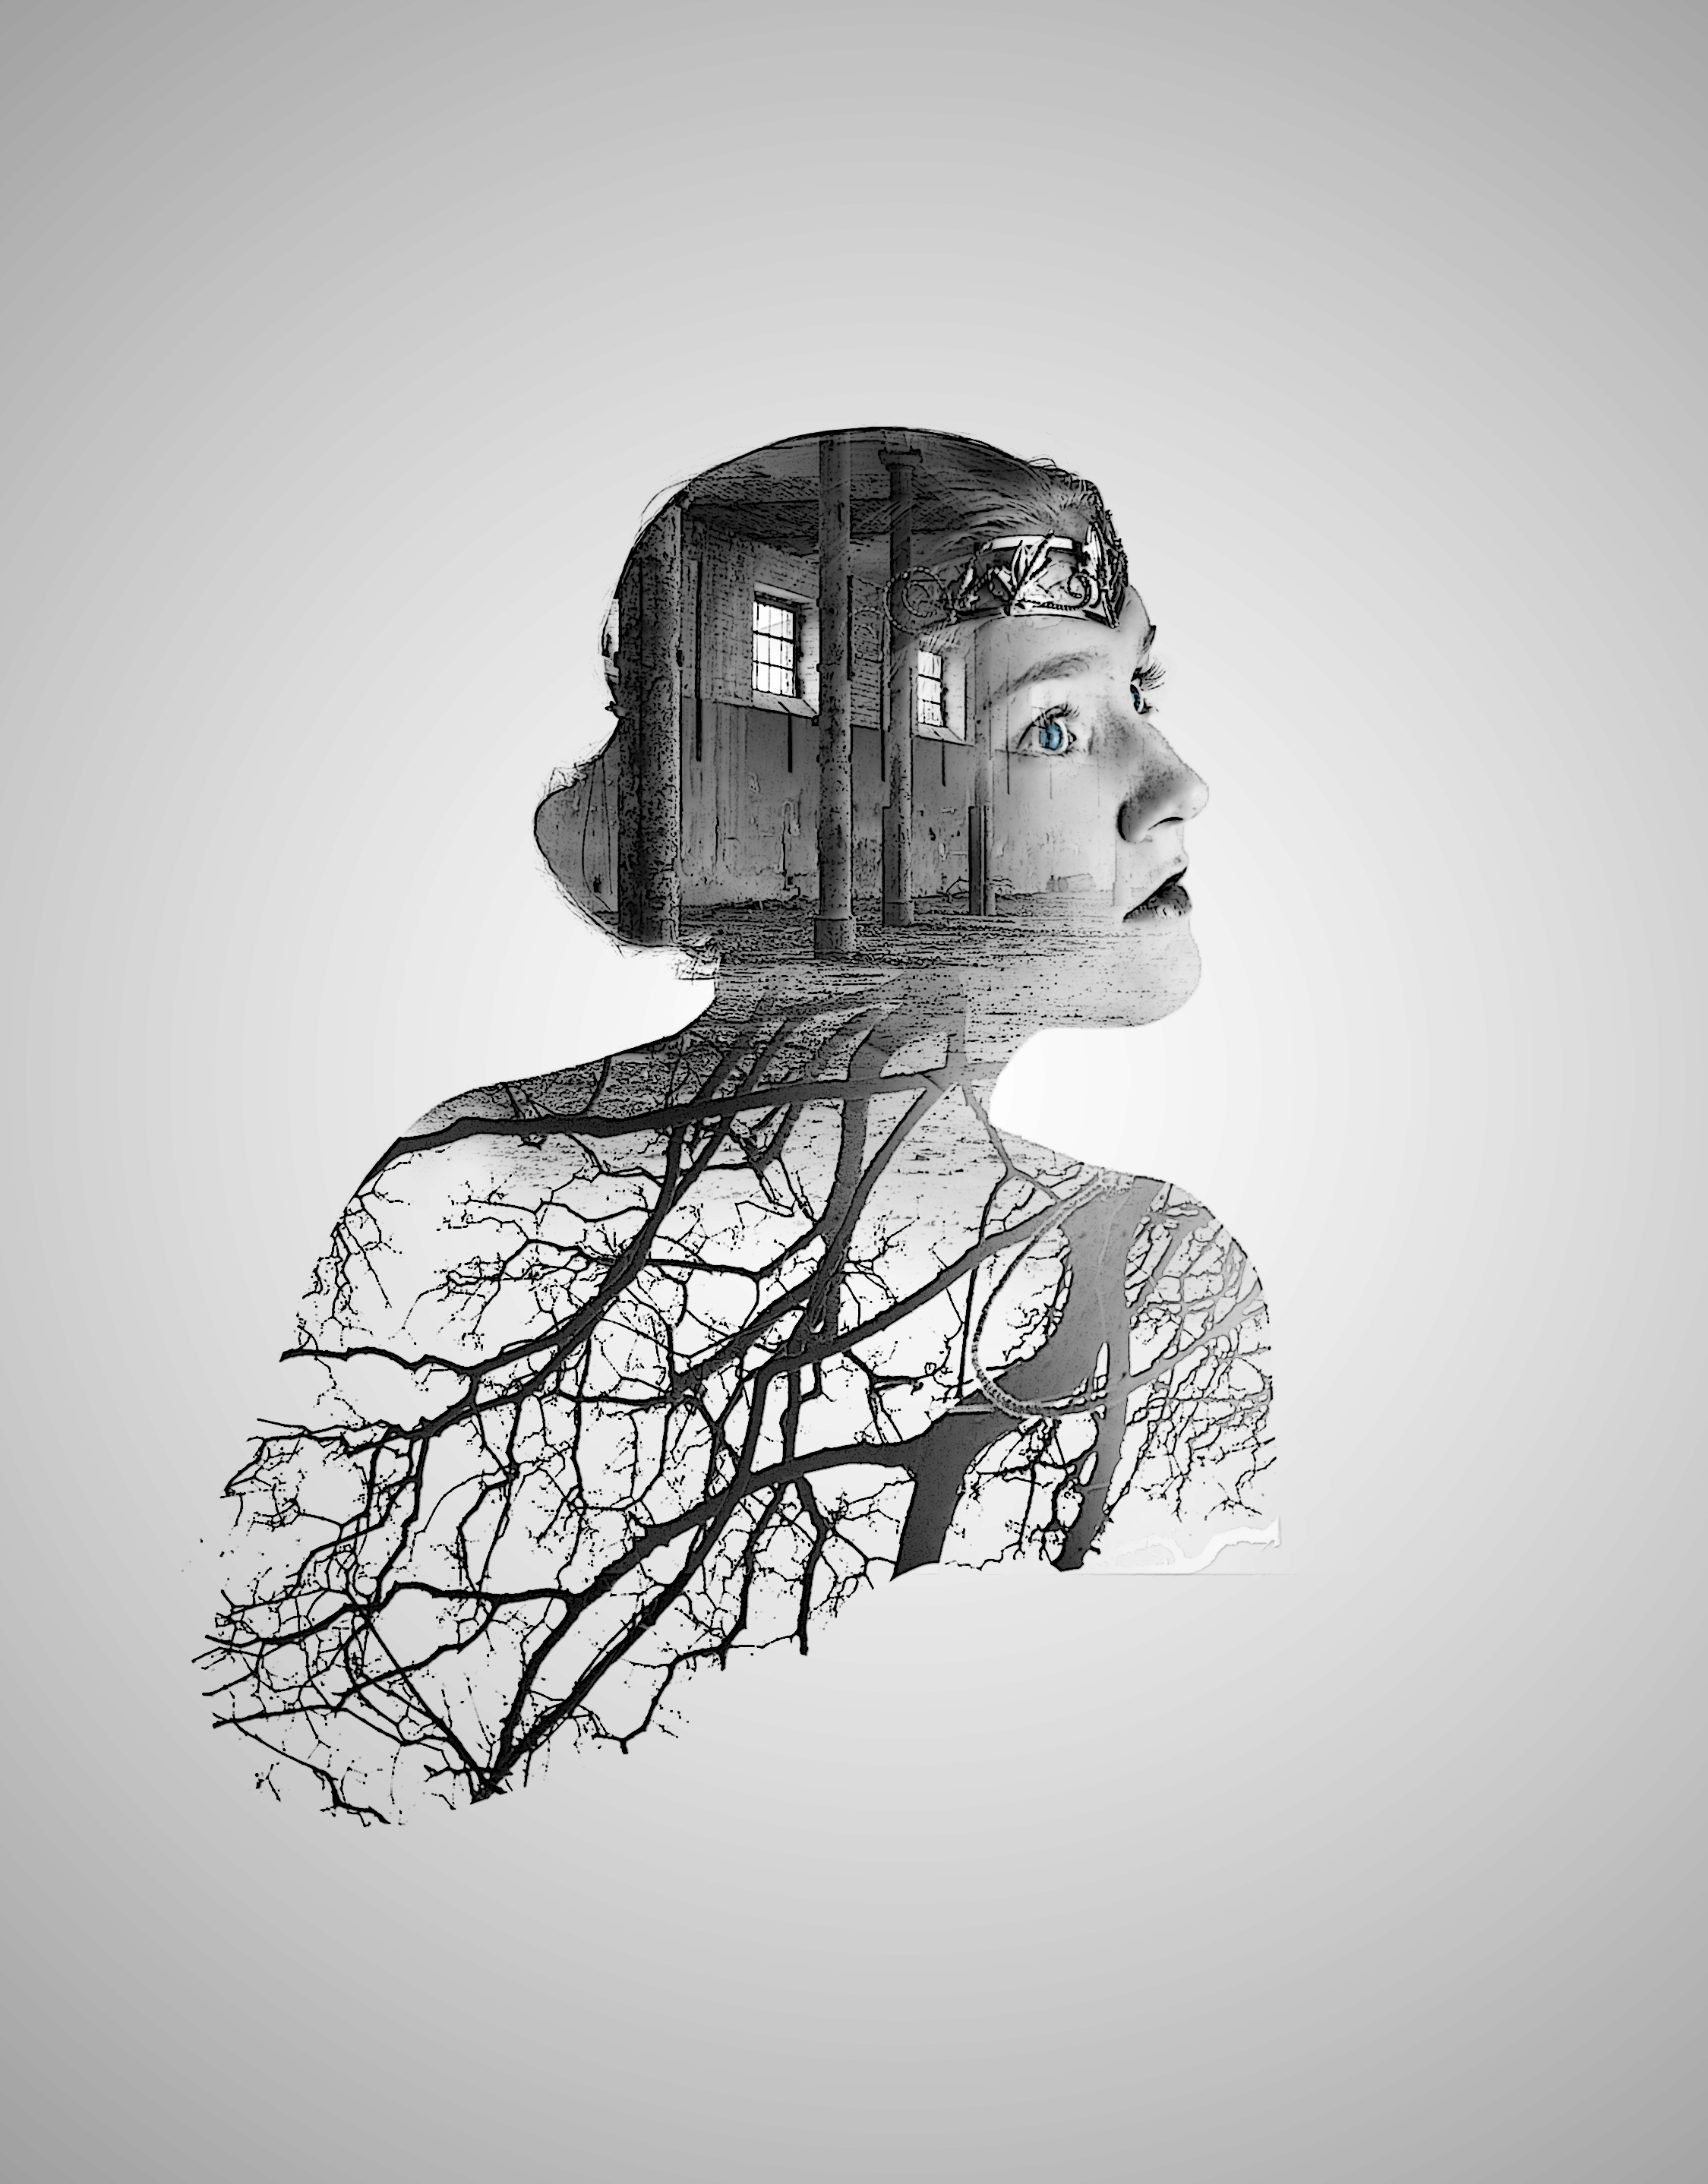 How to create double exposure in photoshop tutorial